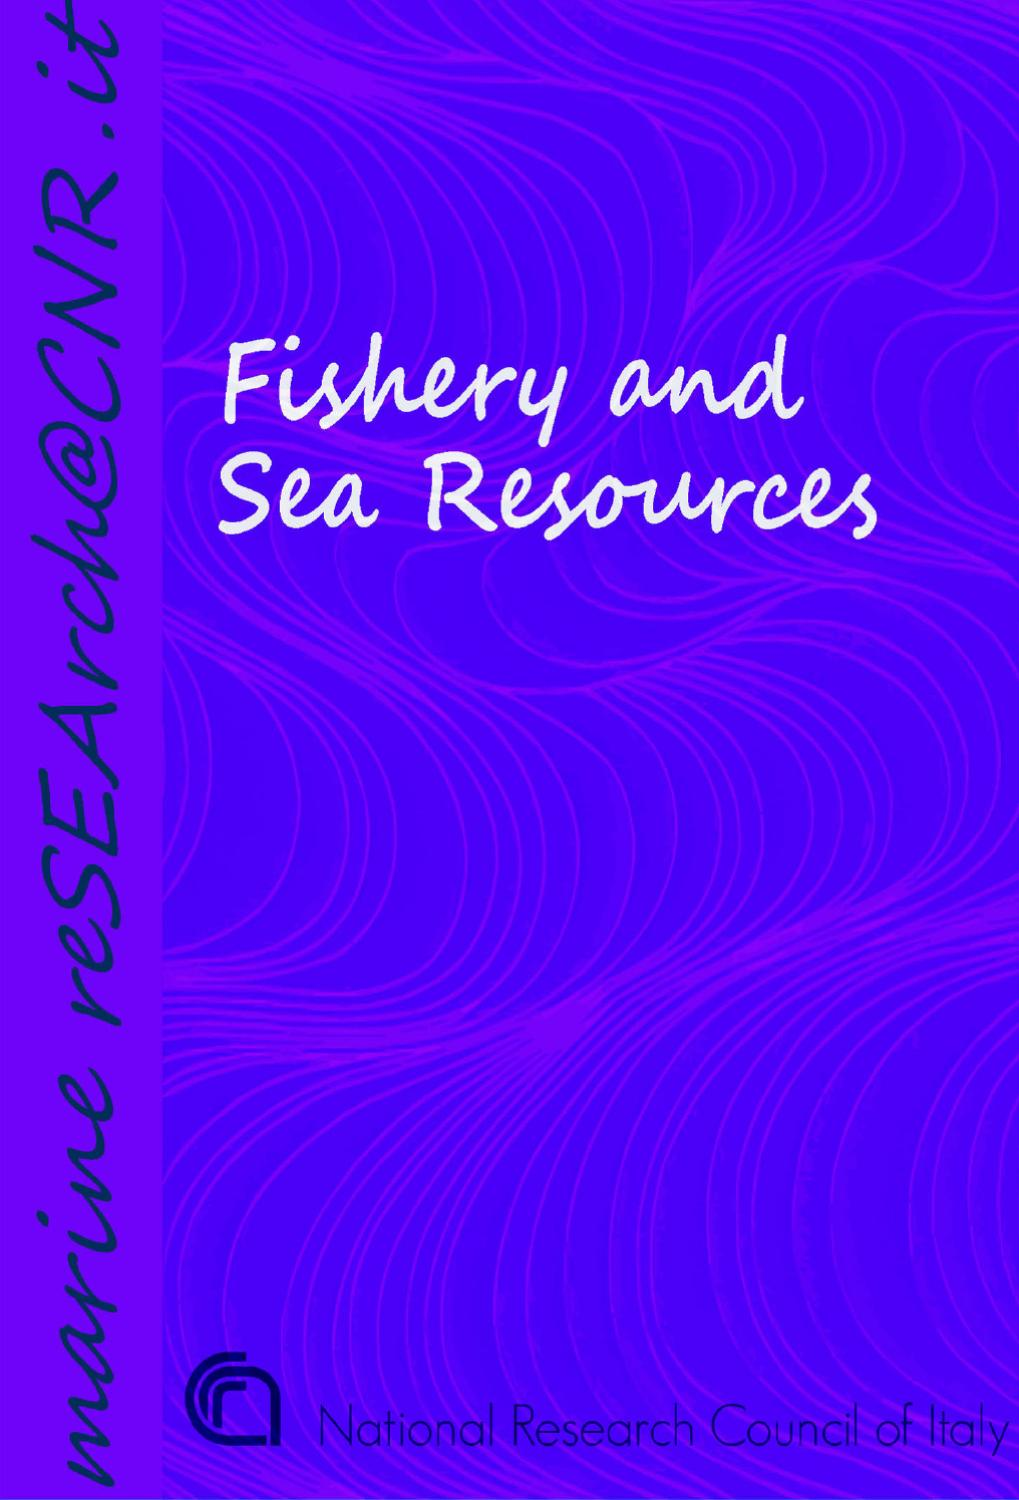 Fishery and Sea Resources by CNR - Dipartimento Scienze del Sistema